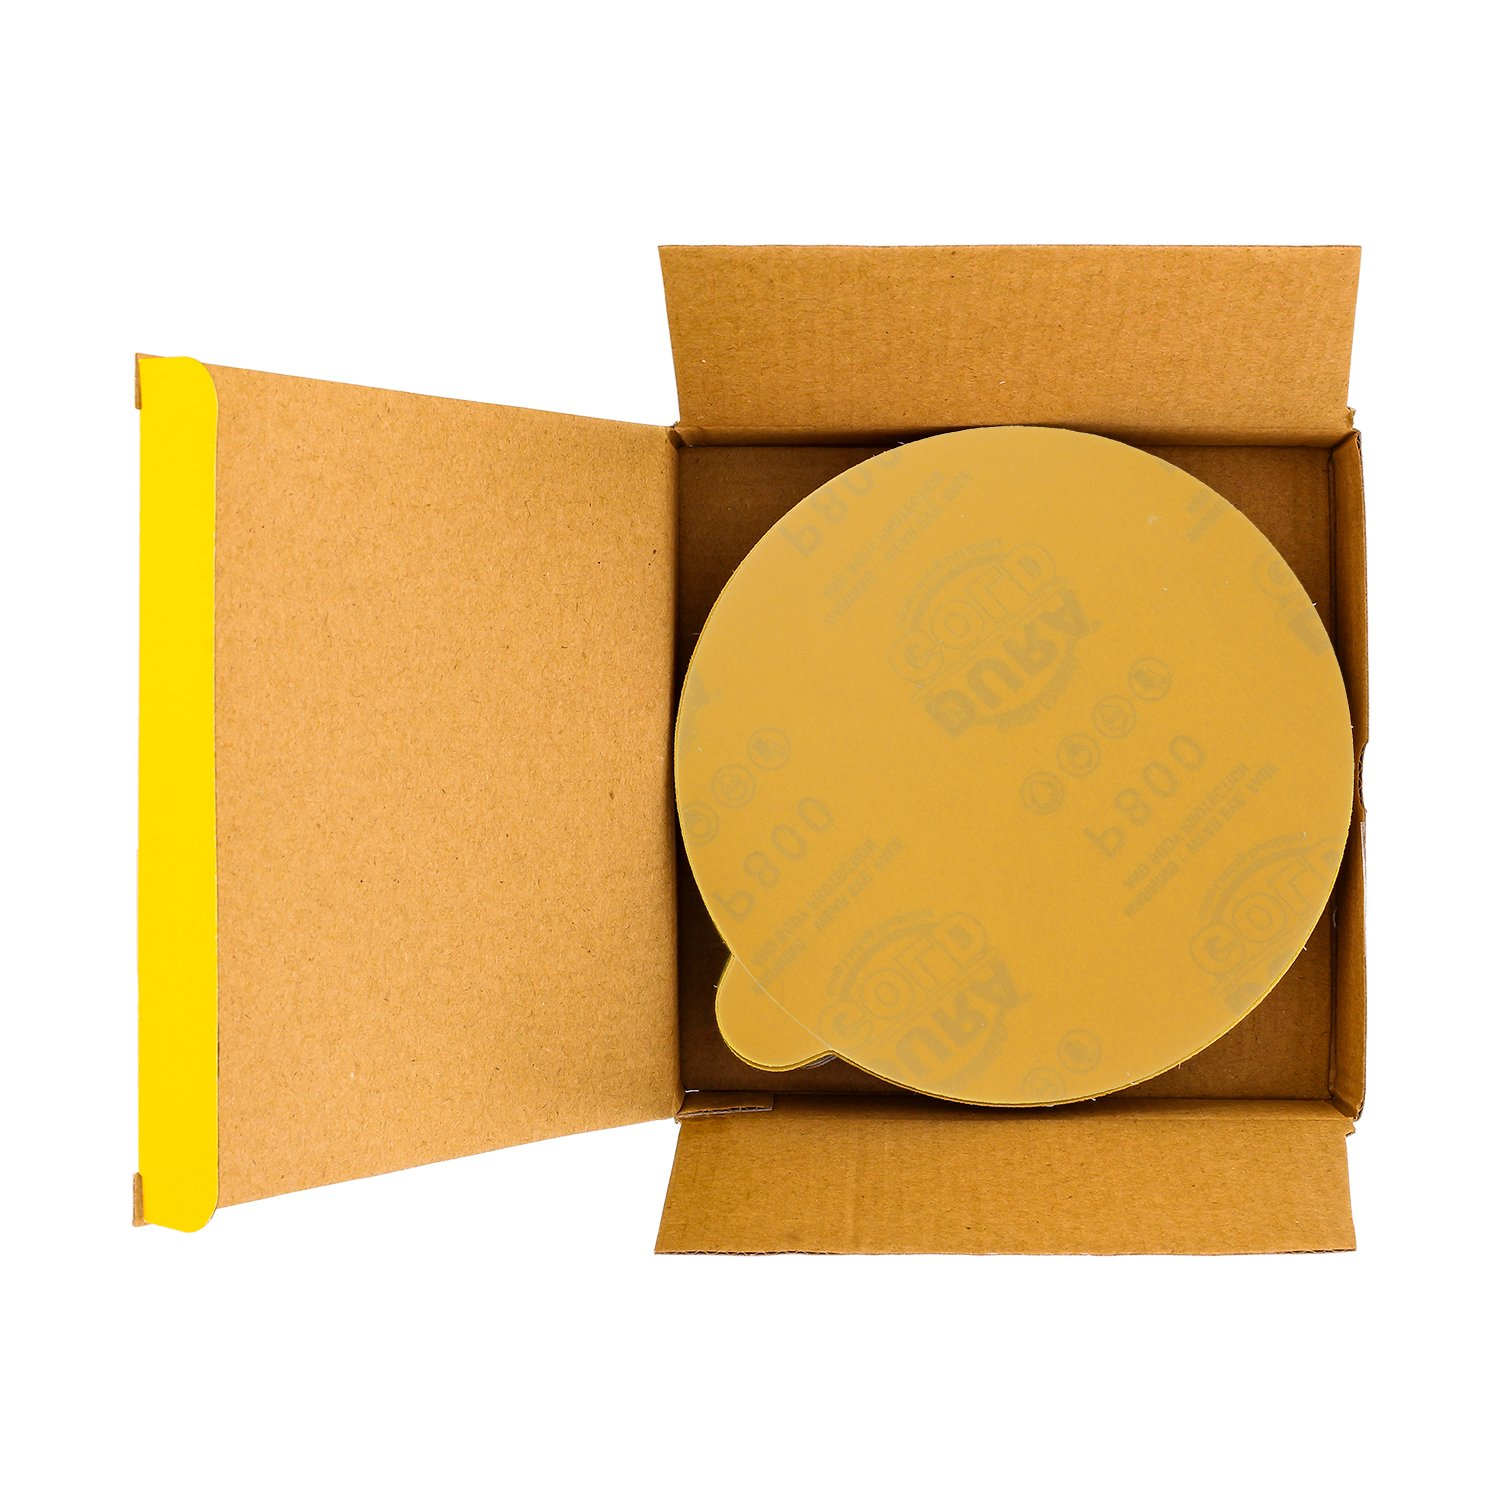 Dura-Gold Premium 100 Grit 6 Gold PSA Self Adhesive Stickyback Sanding Discs for DA Sanders Box of 50 Sandpaper Finishing Discs for Automotive and Woodworking